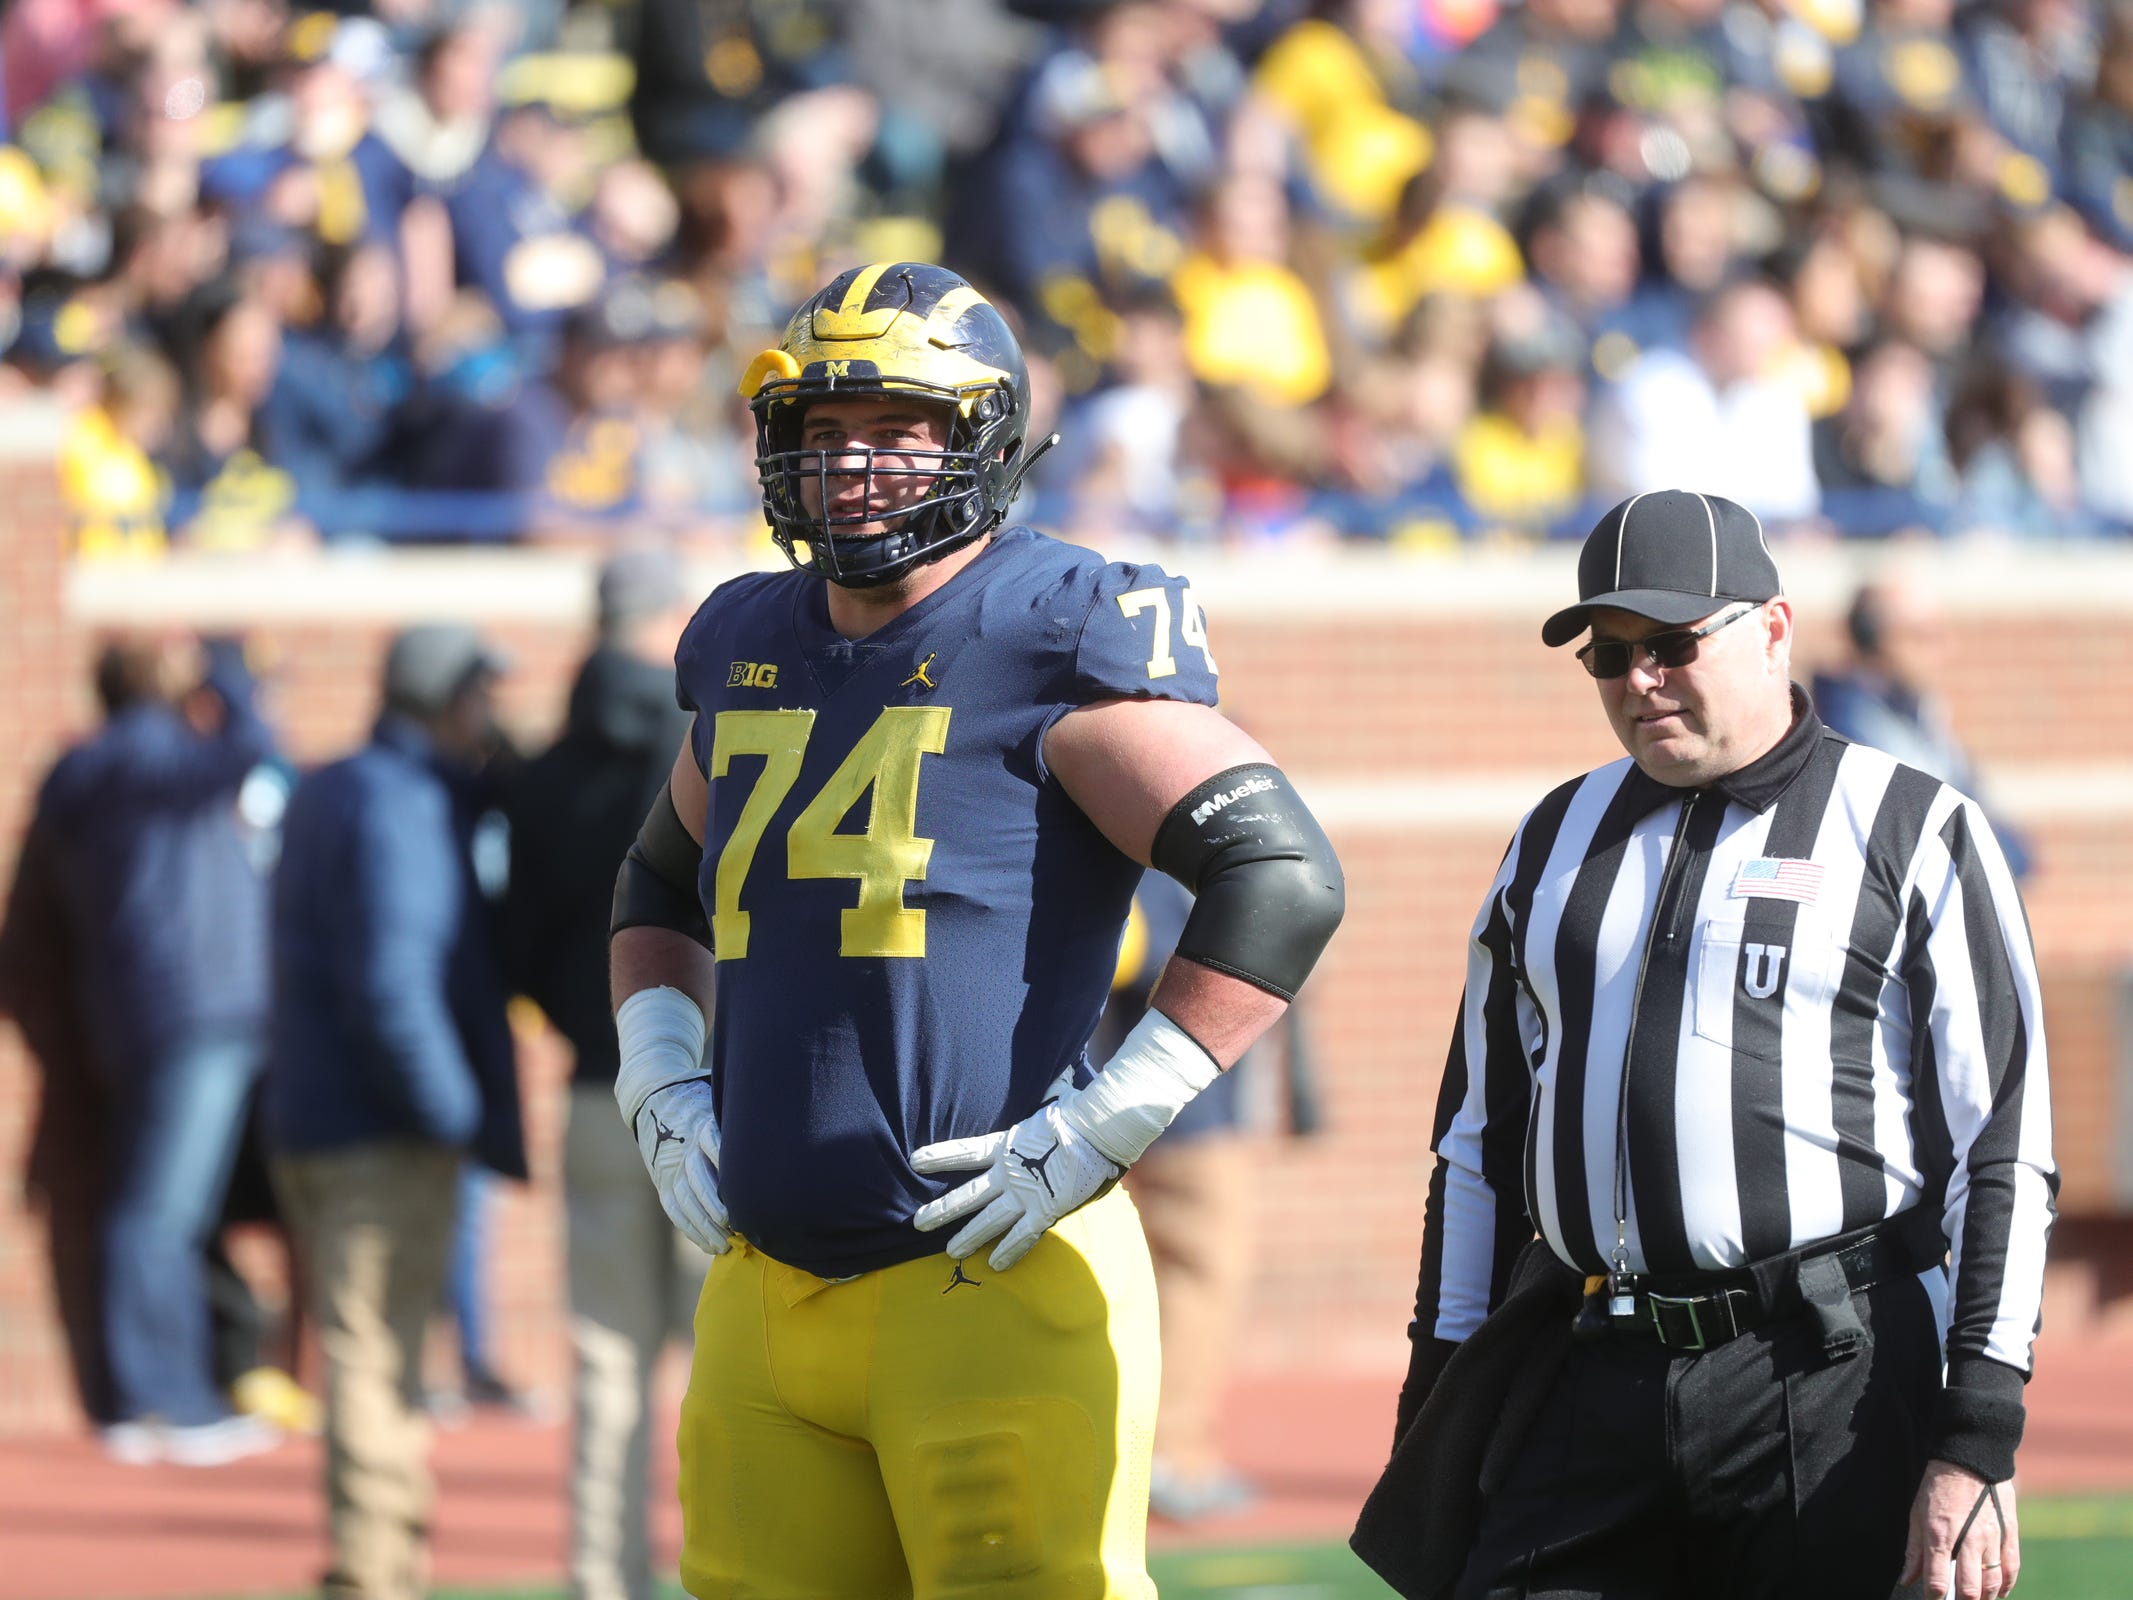 Michigan offensive lineman Ben Bredeson lines up during the spring game Saturday, April 13, 2019 at Michigan Stadium in Ann Arbor.